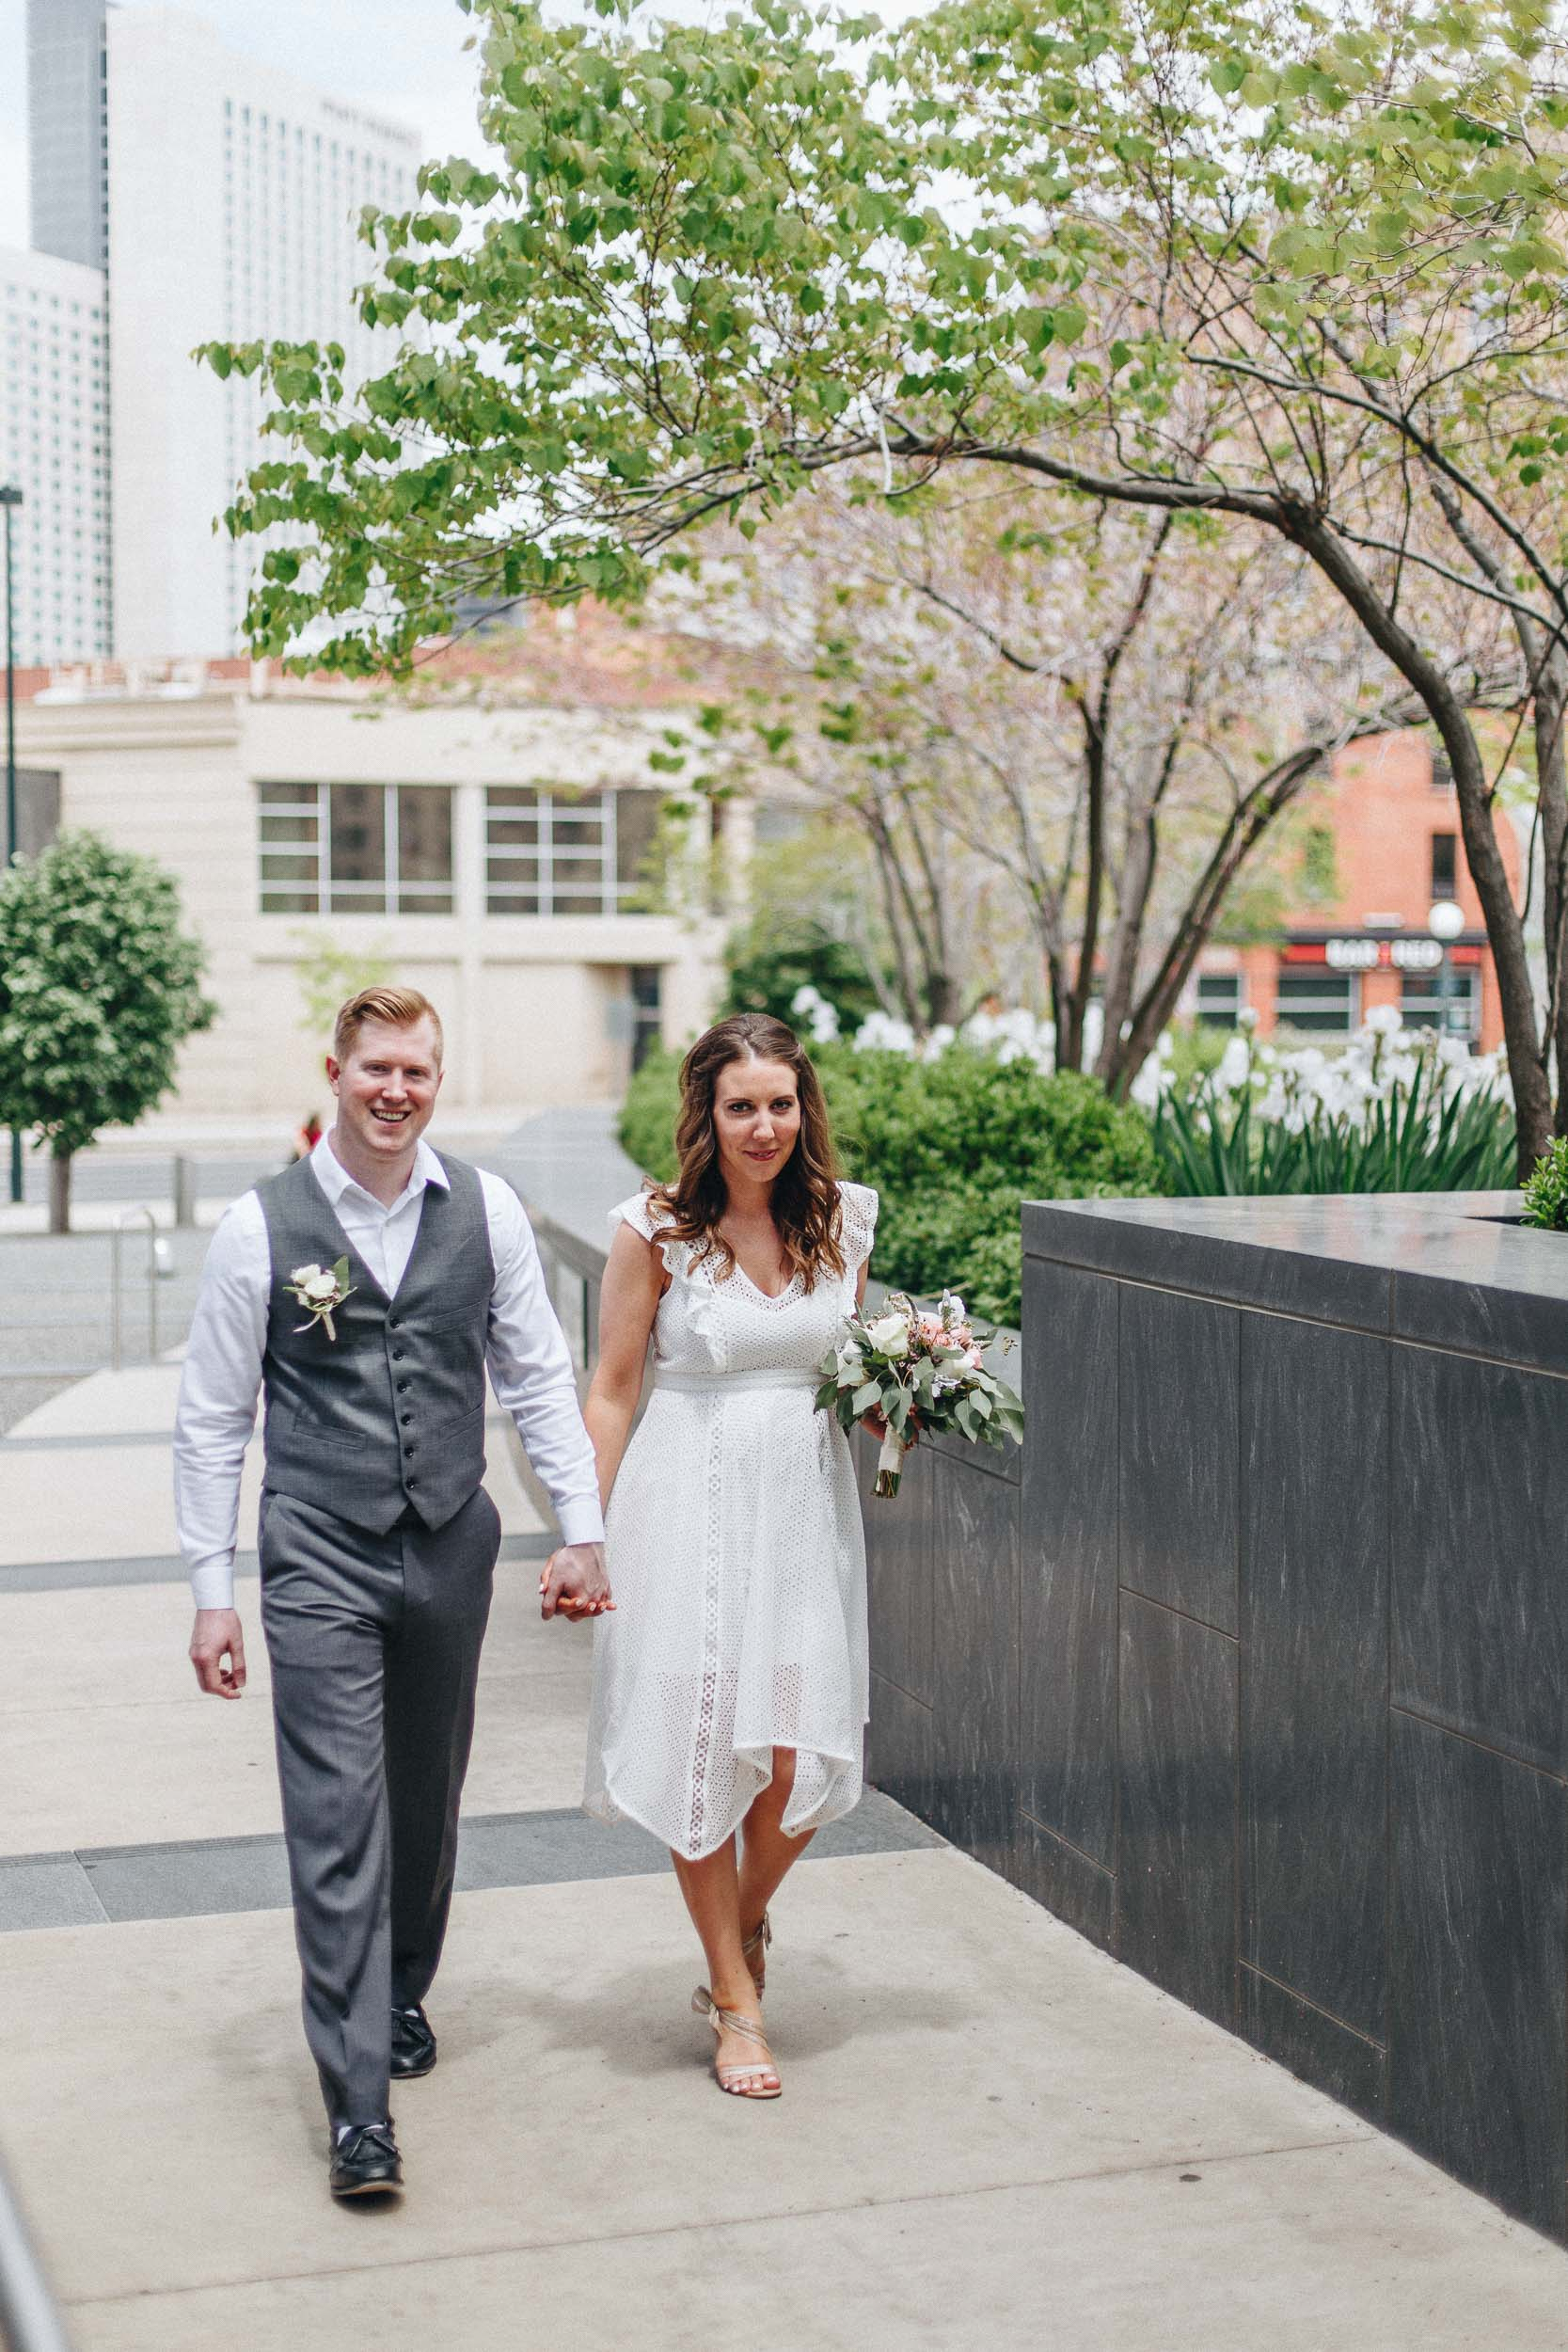 Blog-Lindsey and Dustin 5.18.18-109.jpg